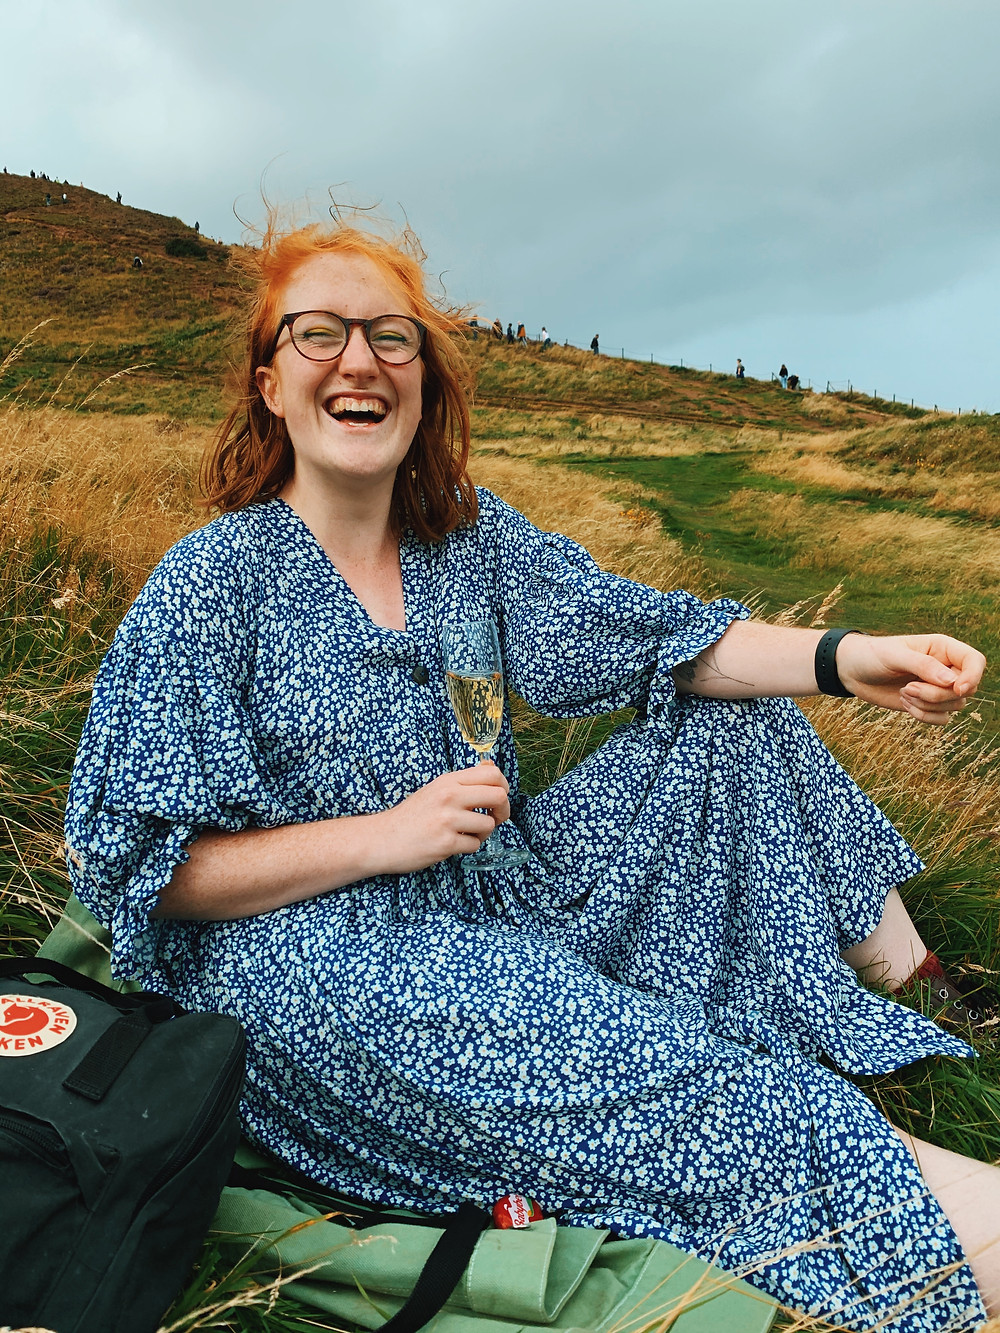 [Picture 7 - Roisin wears a Birgitte Helmersson Zero Waste Gather Dress made in a blue daisy print viscose from Sister Mintaka, she is laughing and sitting on the top of Arthur's Seat drinking prosecco in Edinburgh]